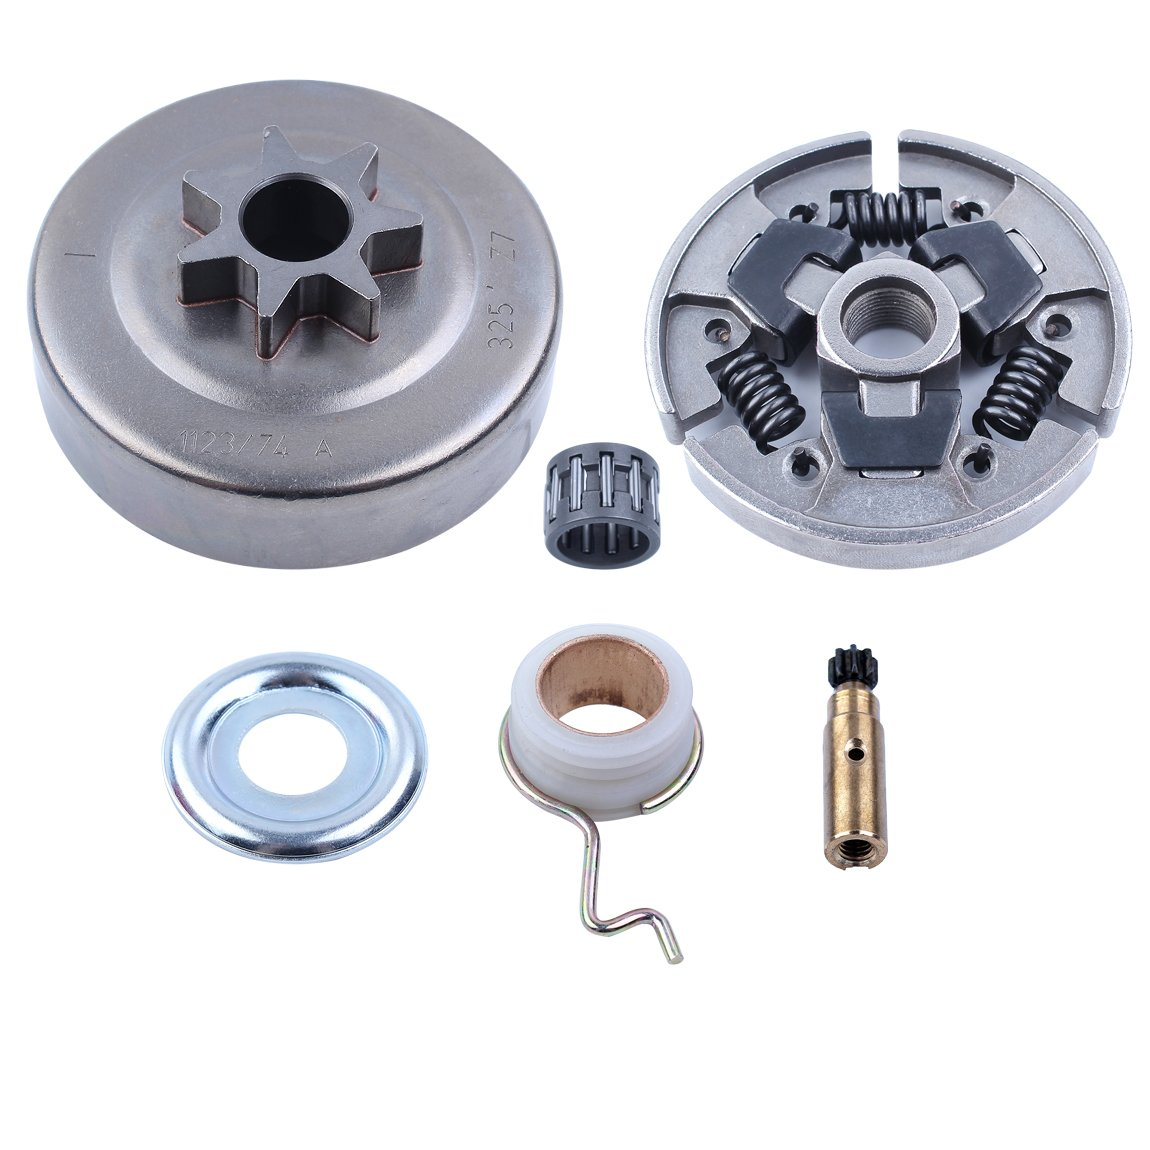 Worm Gear Oil Pump Washer Needle Bearing 3/8-7T Clutch Drum Kit For STIHL 025 MS210 MS230 MS250 017 018 MS170 MS180 170 180 021 023 Chainsaw by Haishine